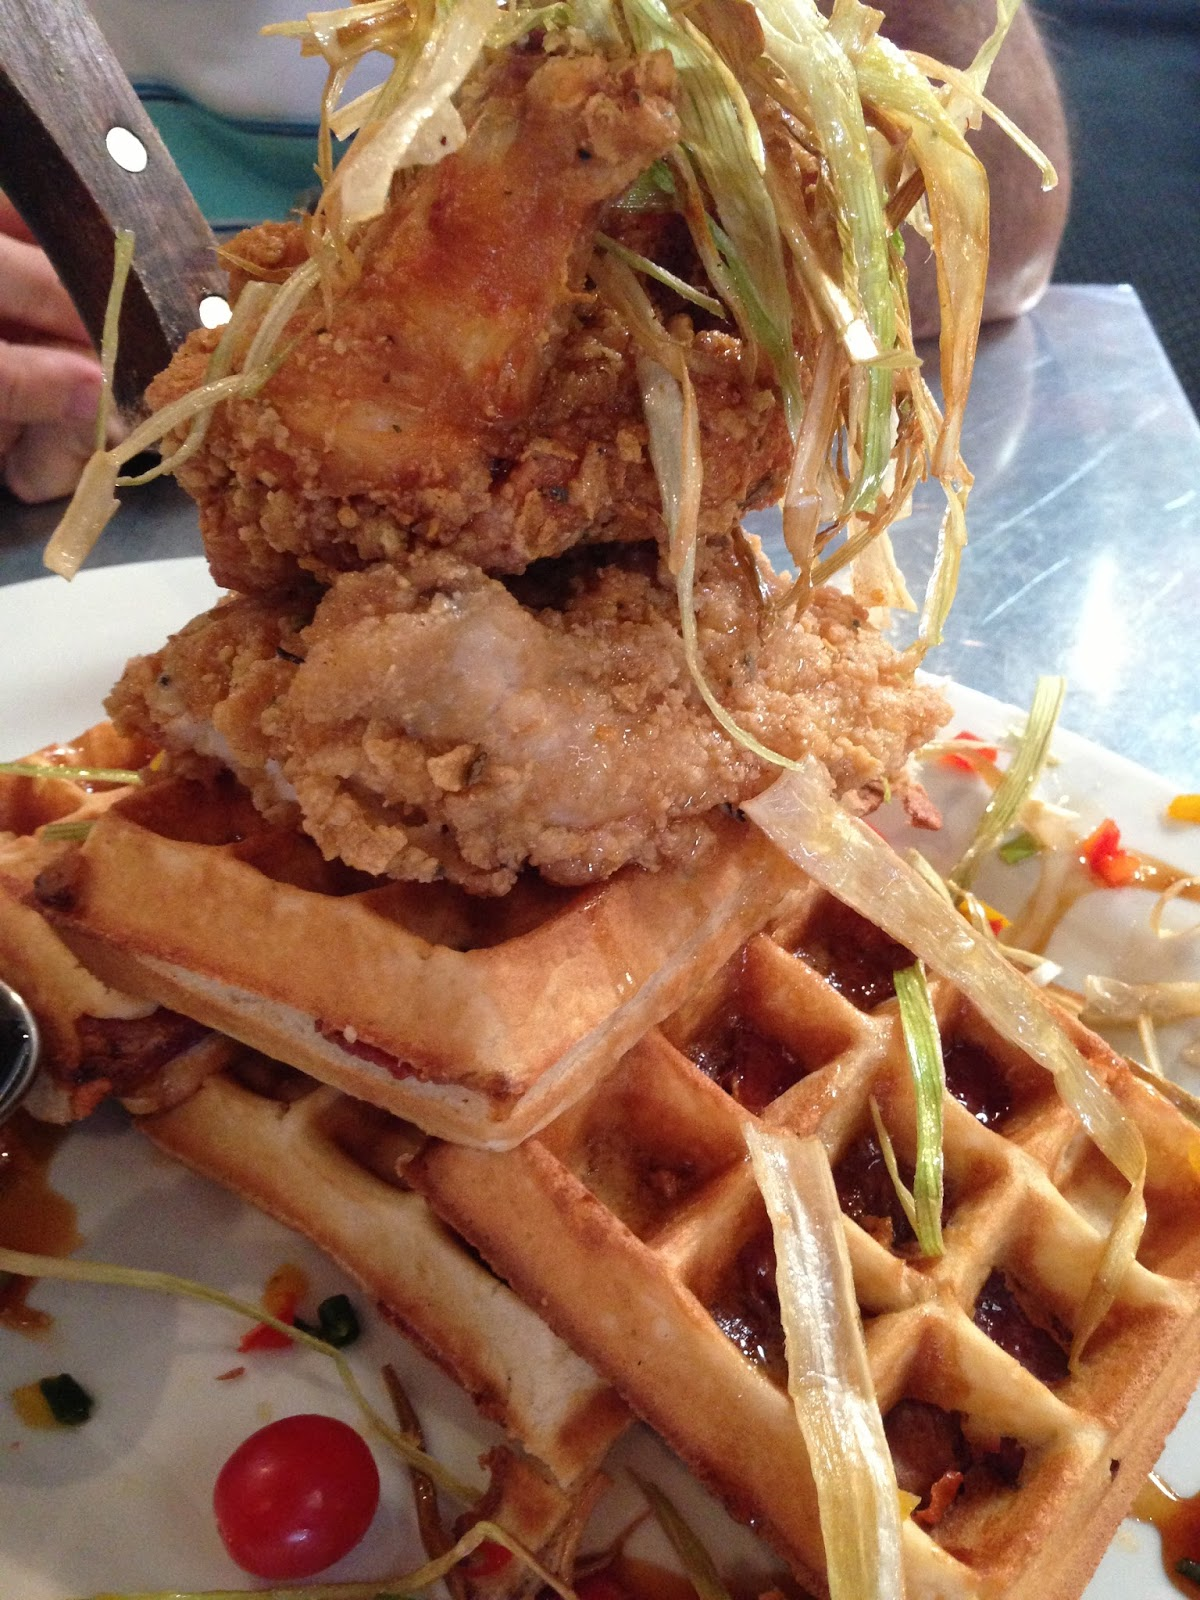 hash house a go go's sage fried chicken and bacon waffles - purple